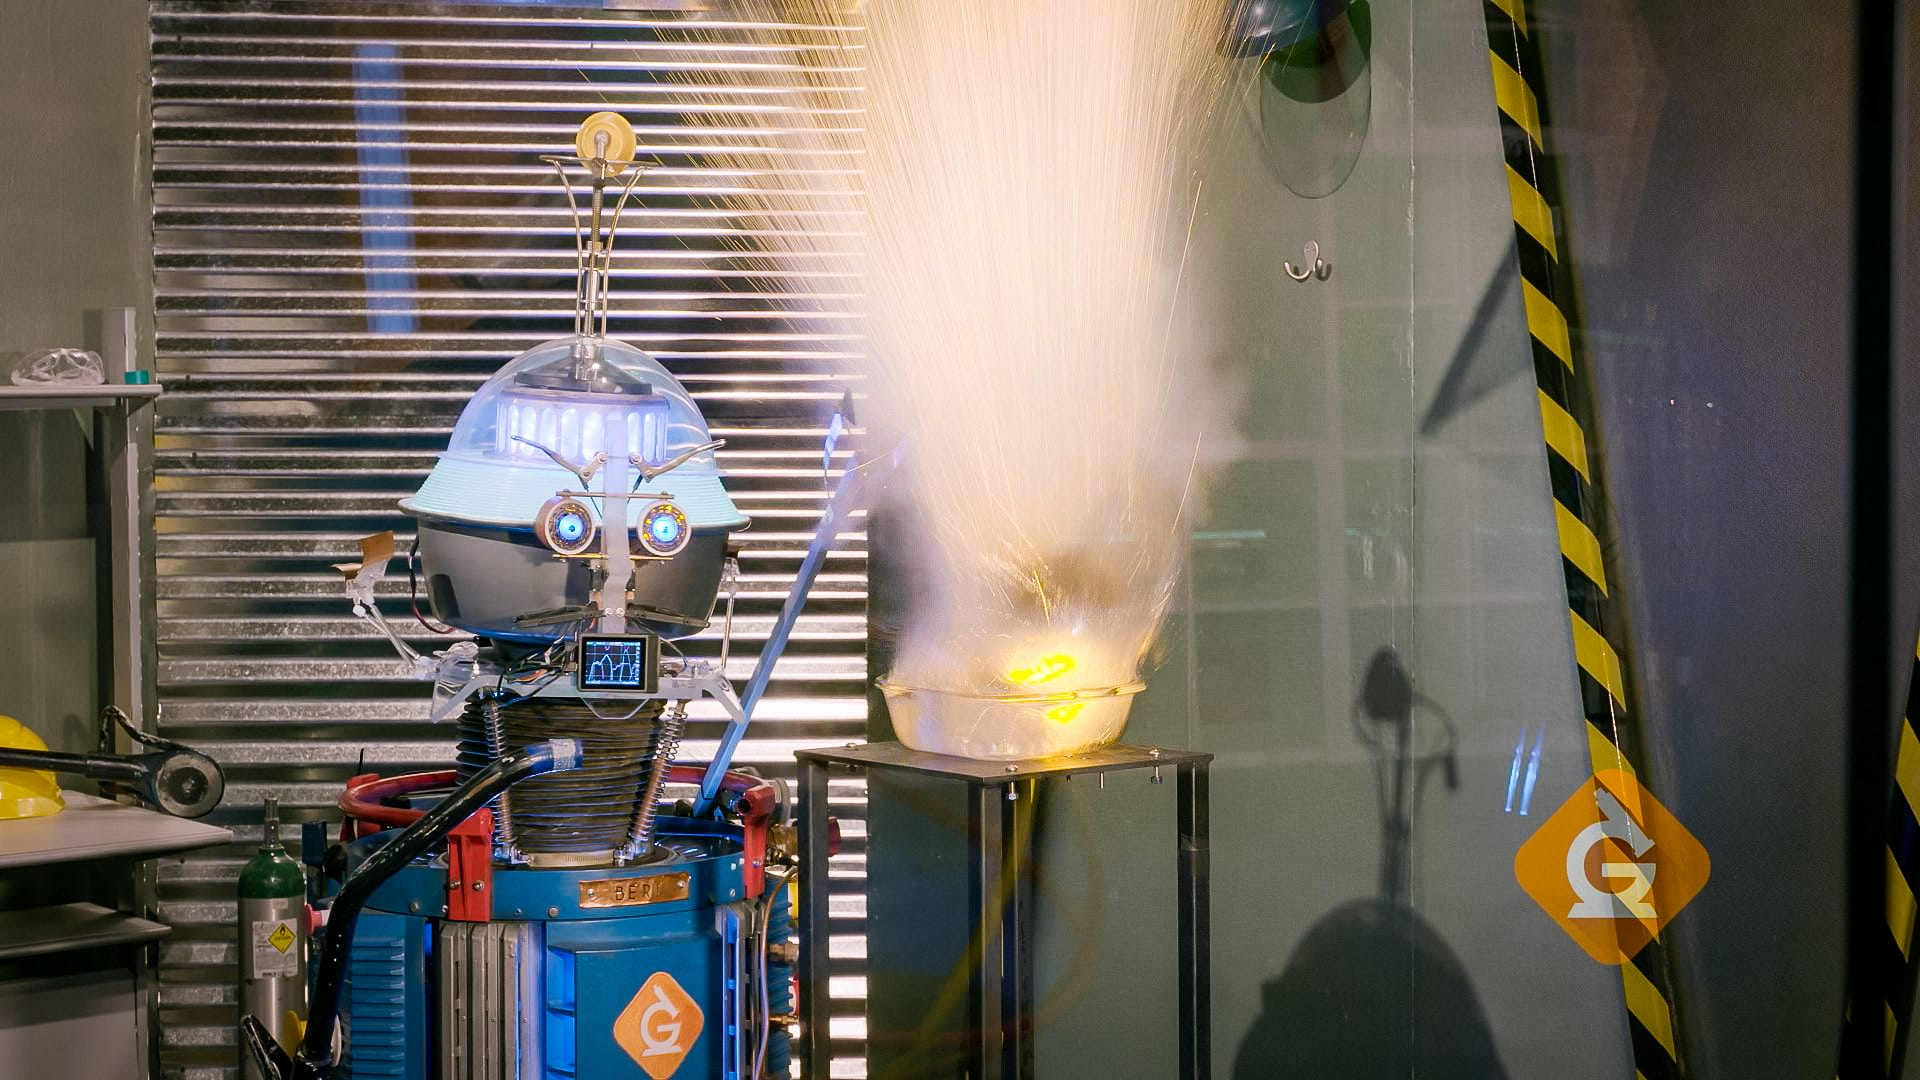 sodium metal reacts with water causing an explosion